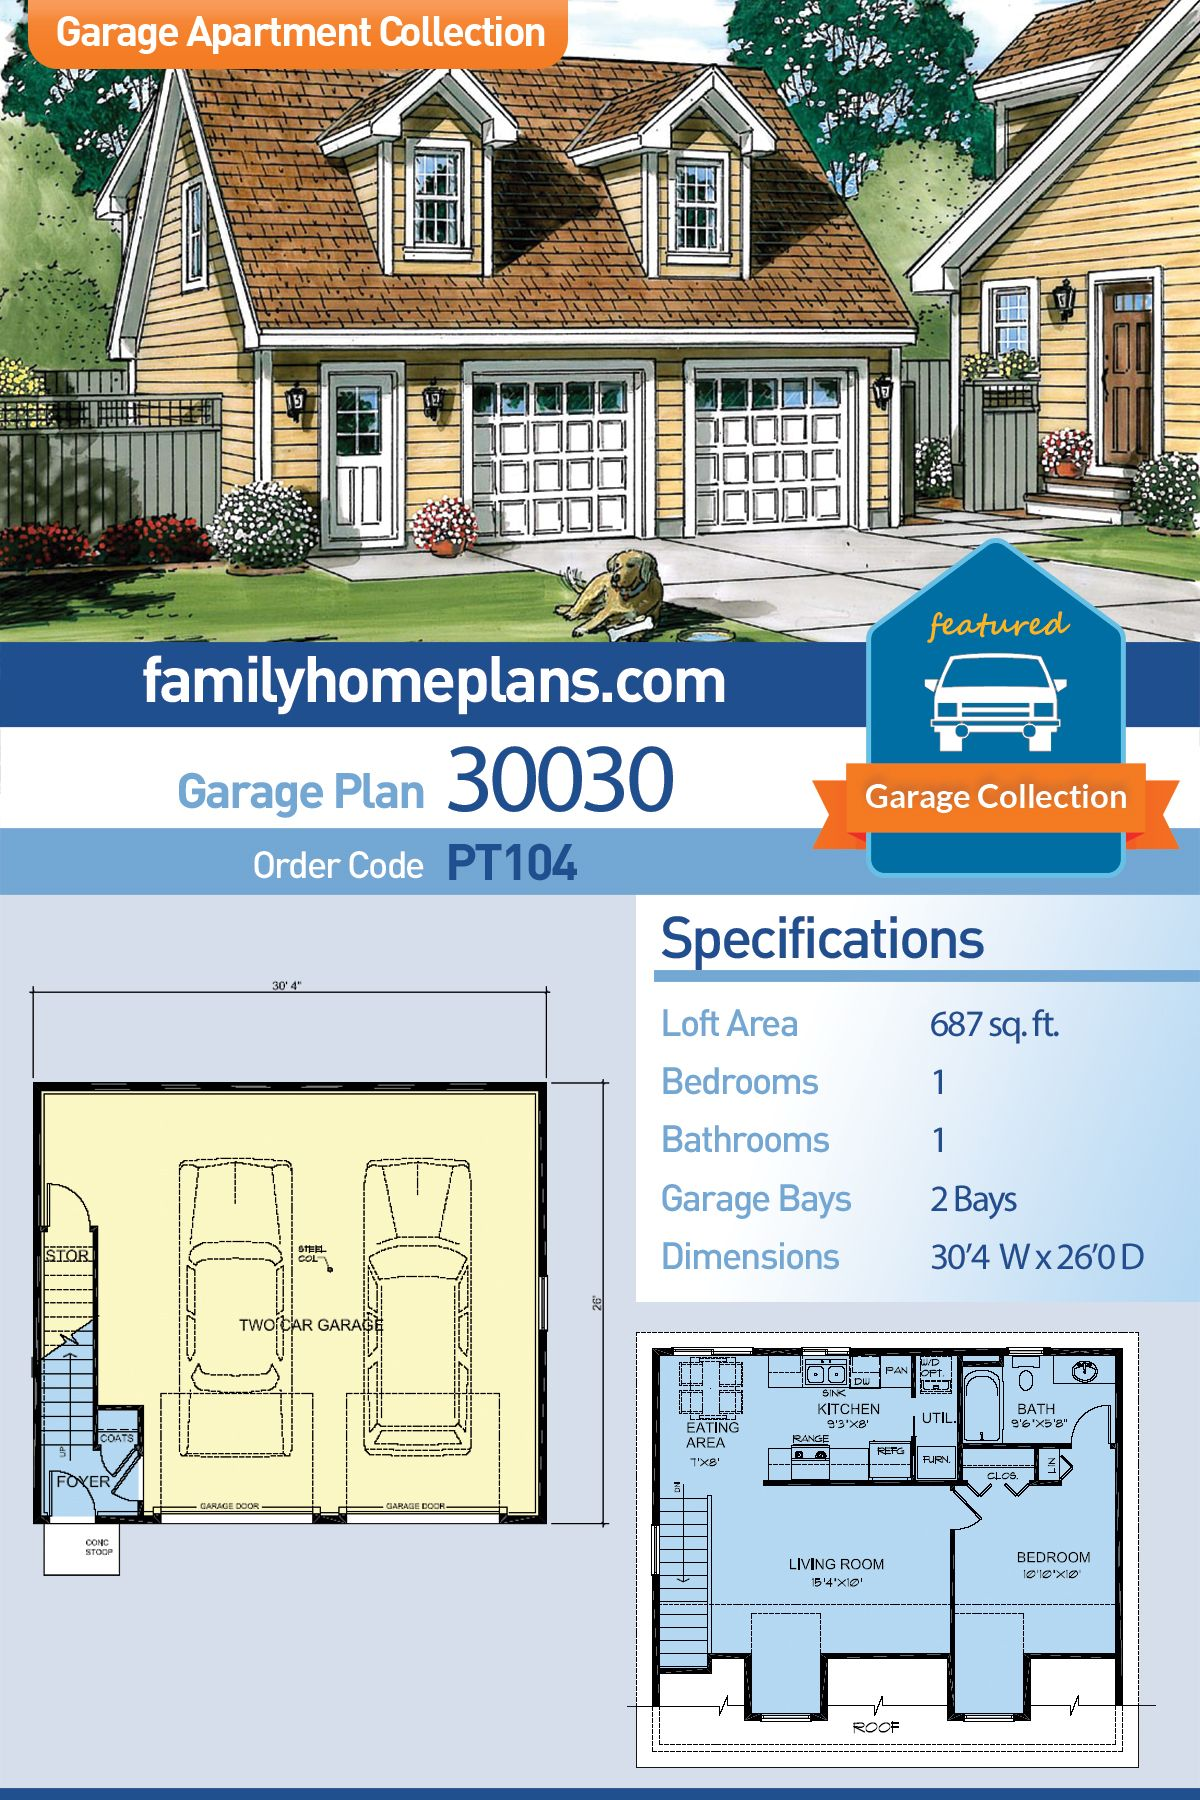 Saltbox Style 2 Car Garage Apartment Plan Number 30030 With 1 Bed 1 Bath Building A Garage Garage Loft Garage Apartments